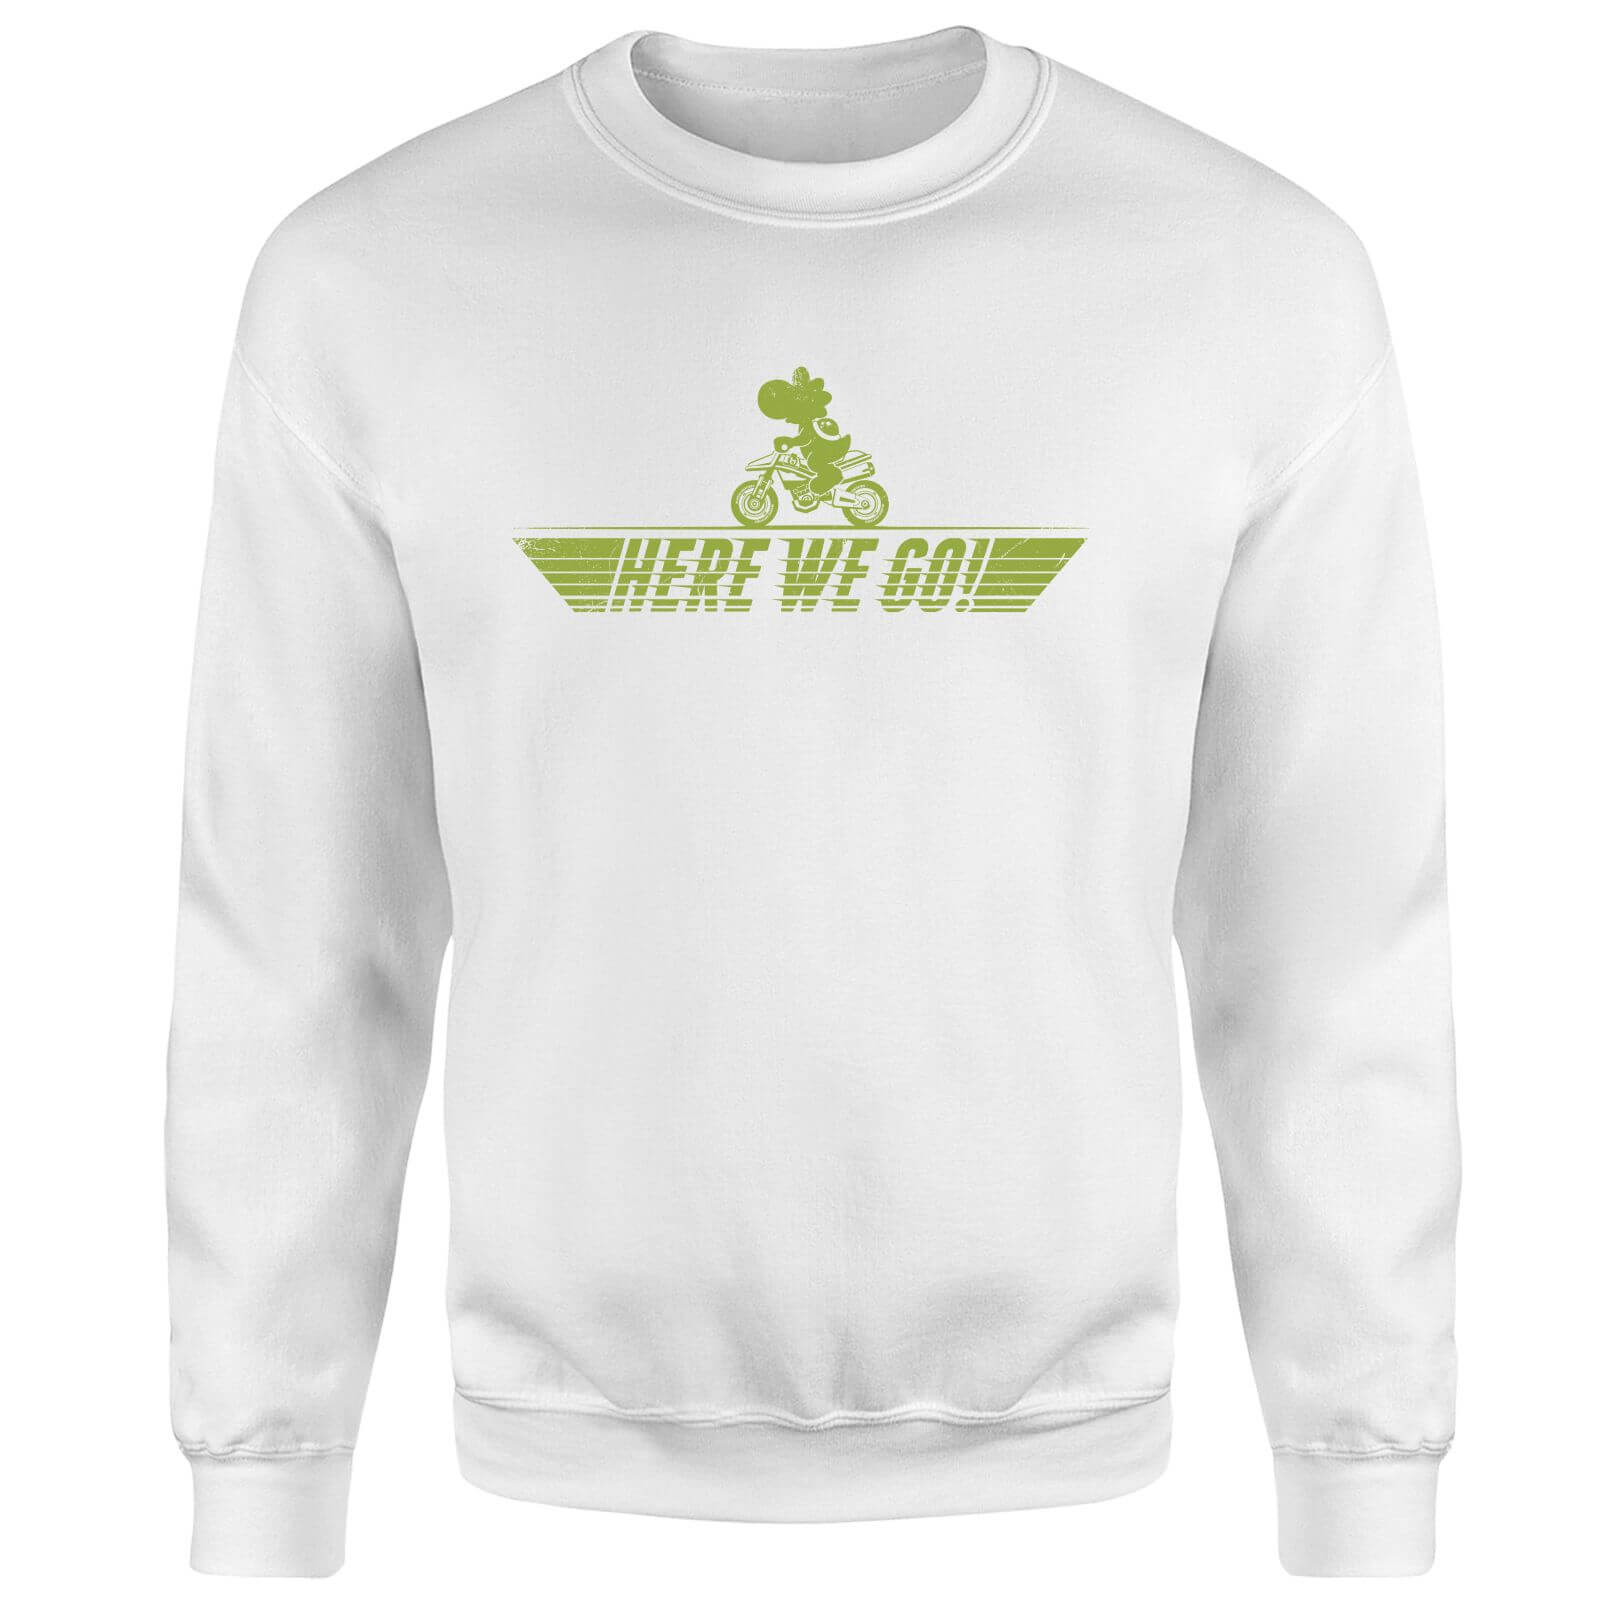 Mario Kart Yoshi Here We Go Sweatshirt - White